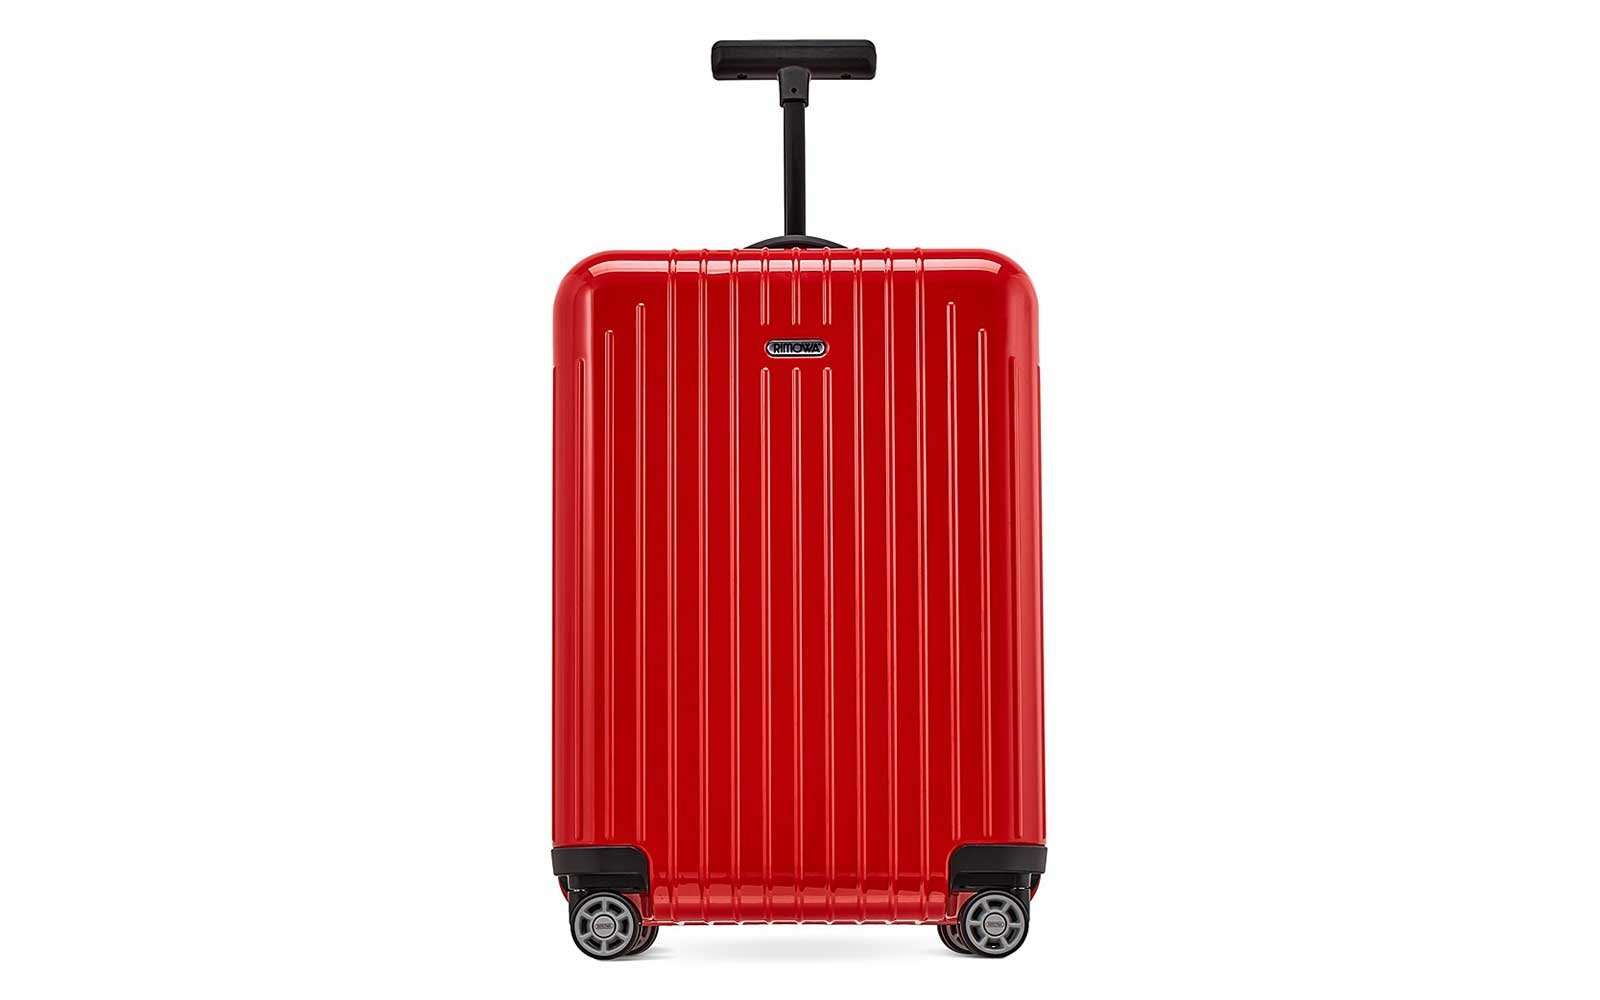 Rimowa Cherry Red Suitcase